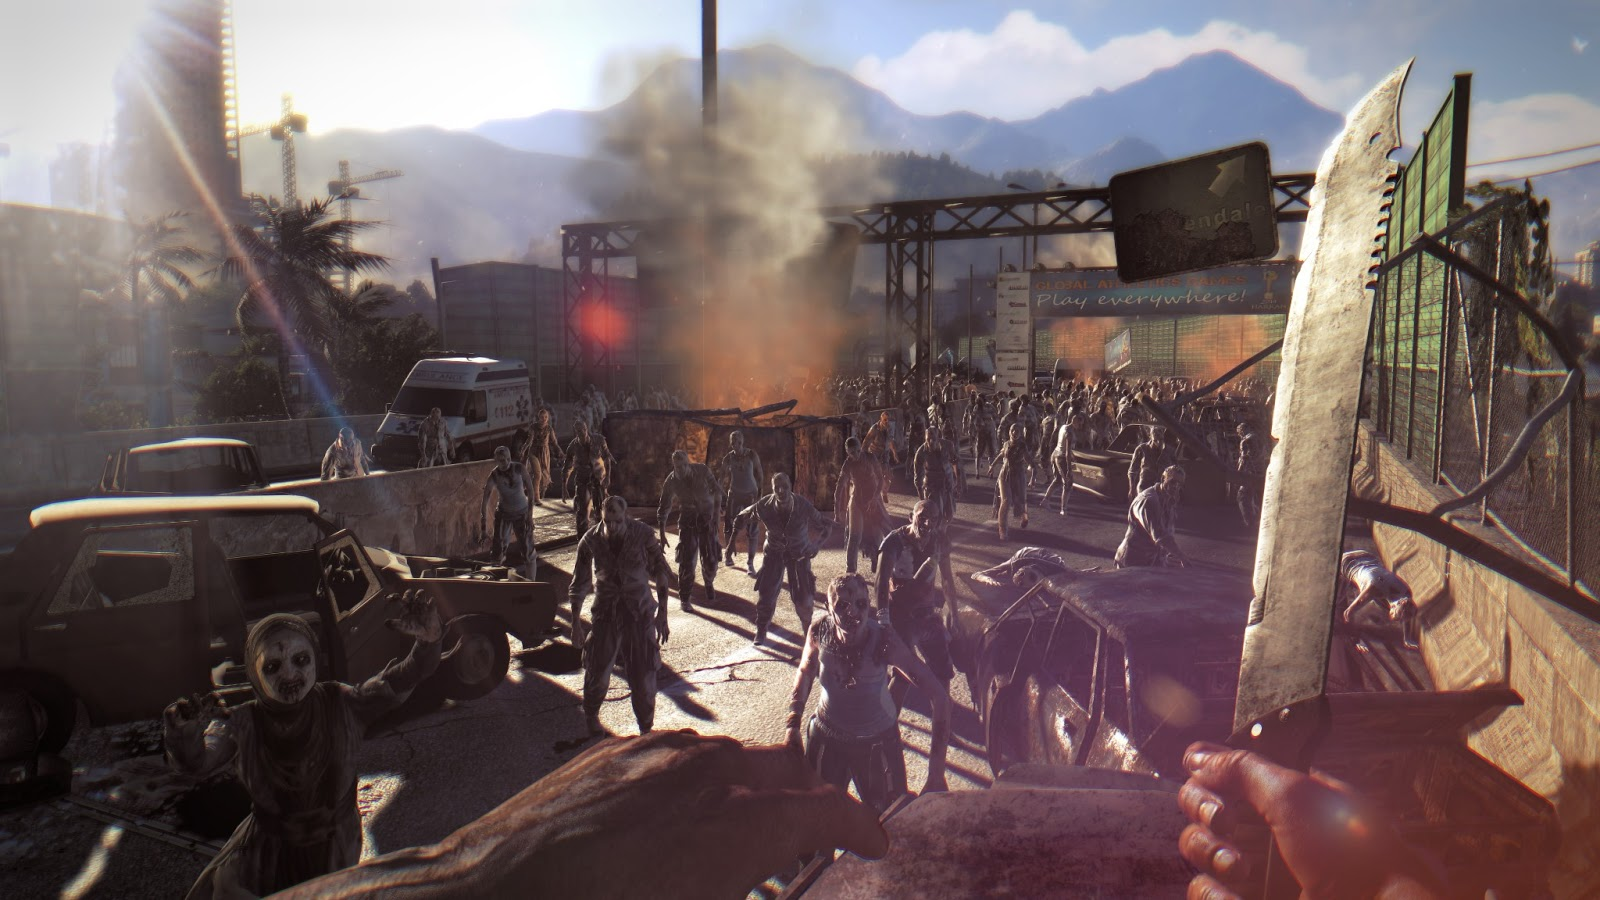 Dying Light Gameplay Video Details Cooperative Multiplayer And PvP